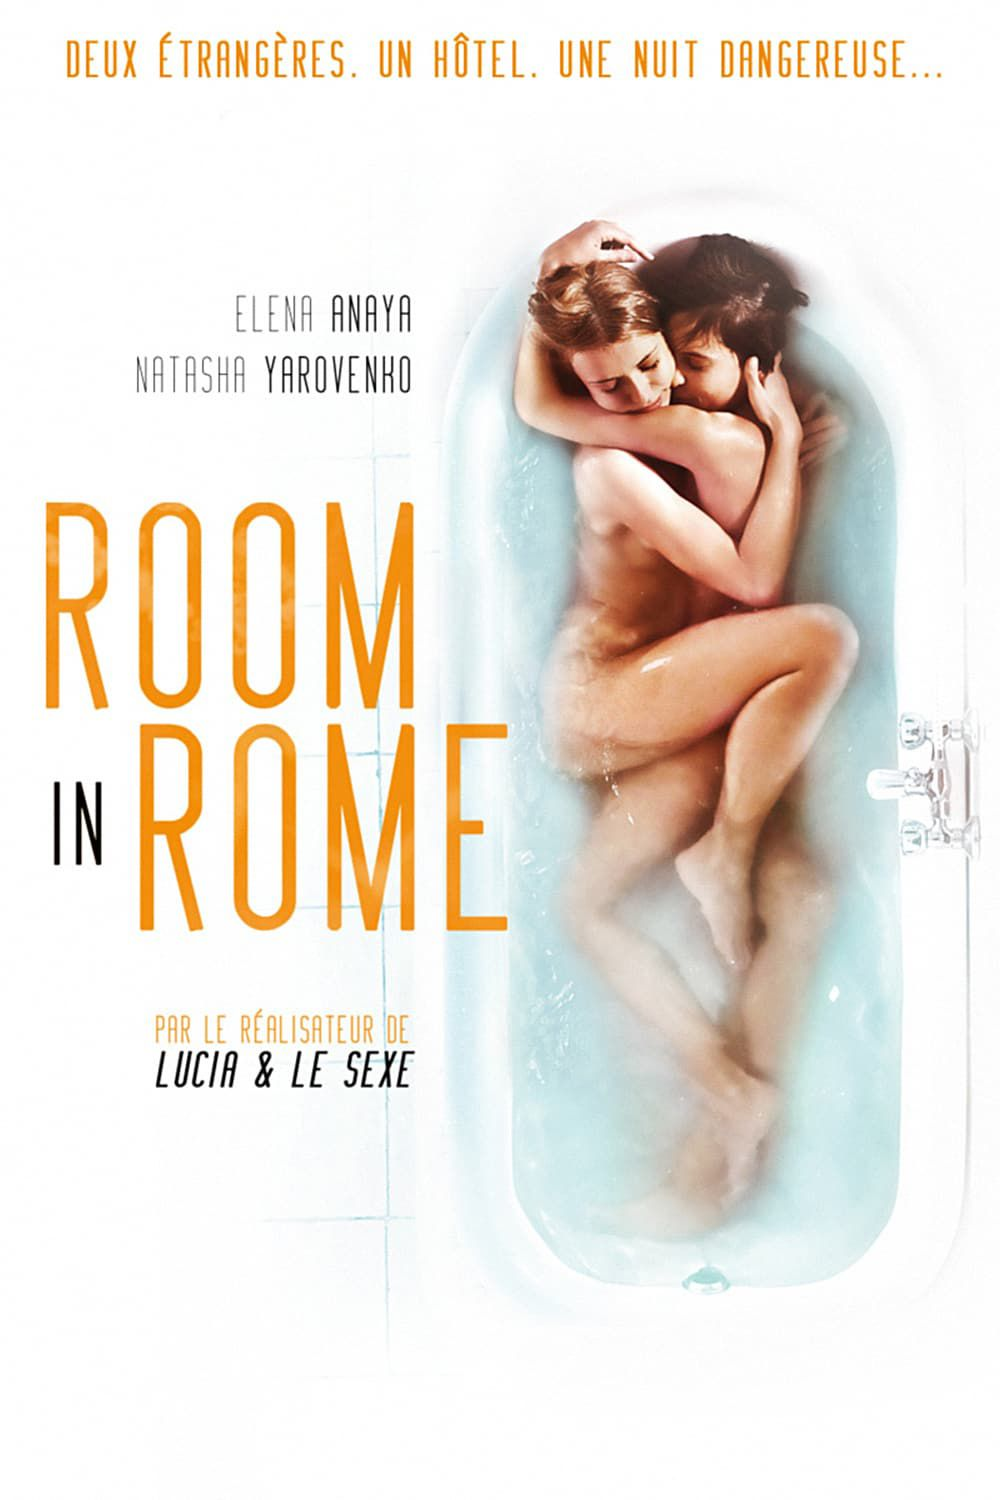 Room in Rome - Film (2010)